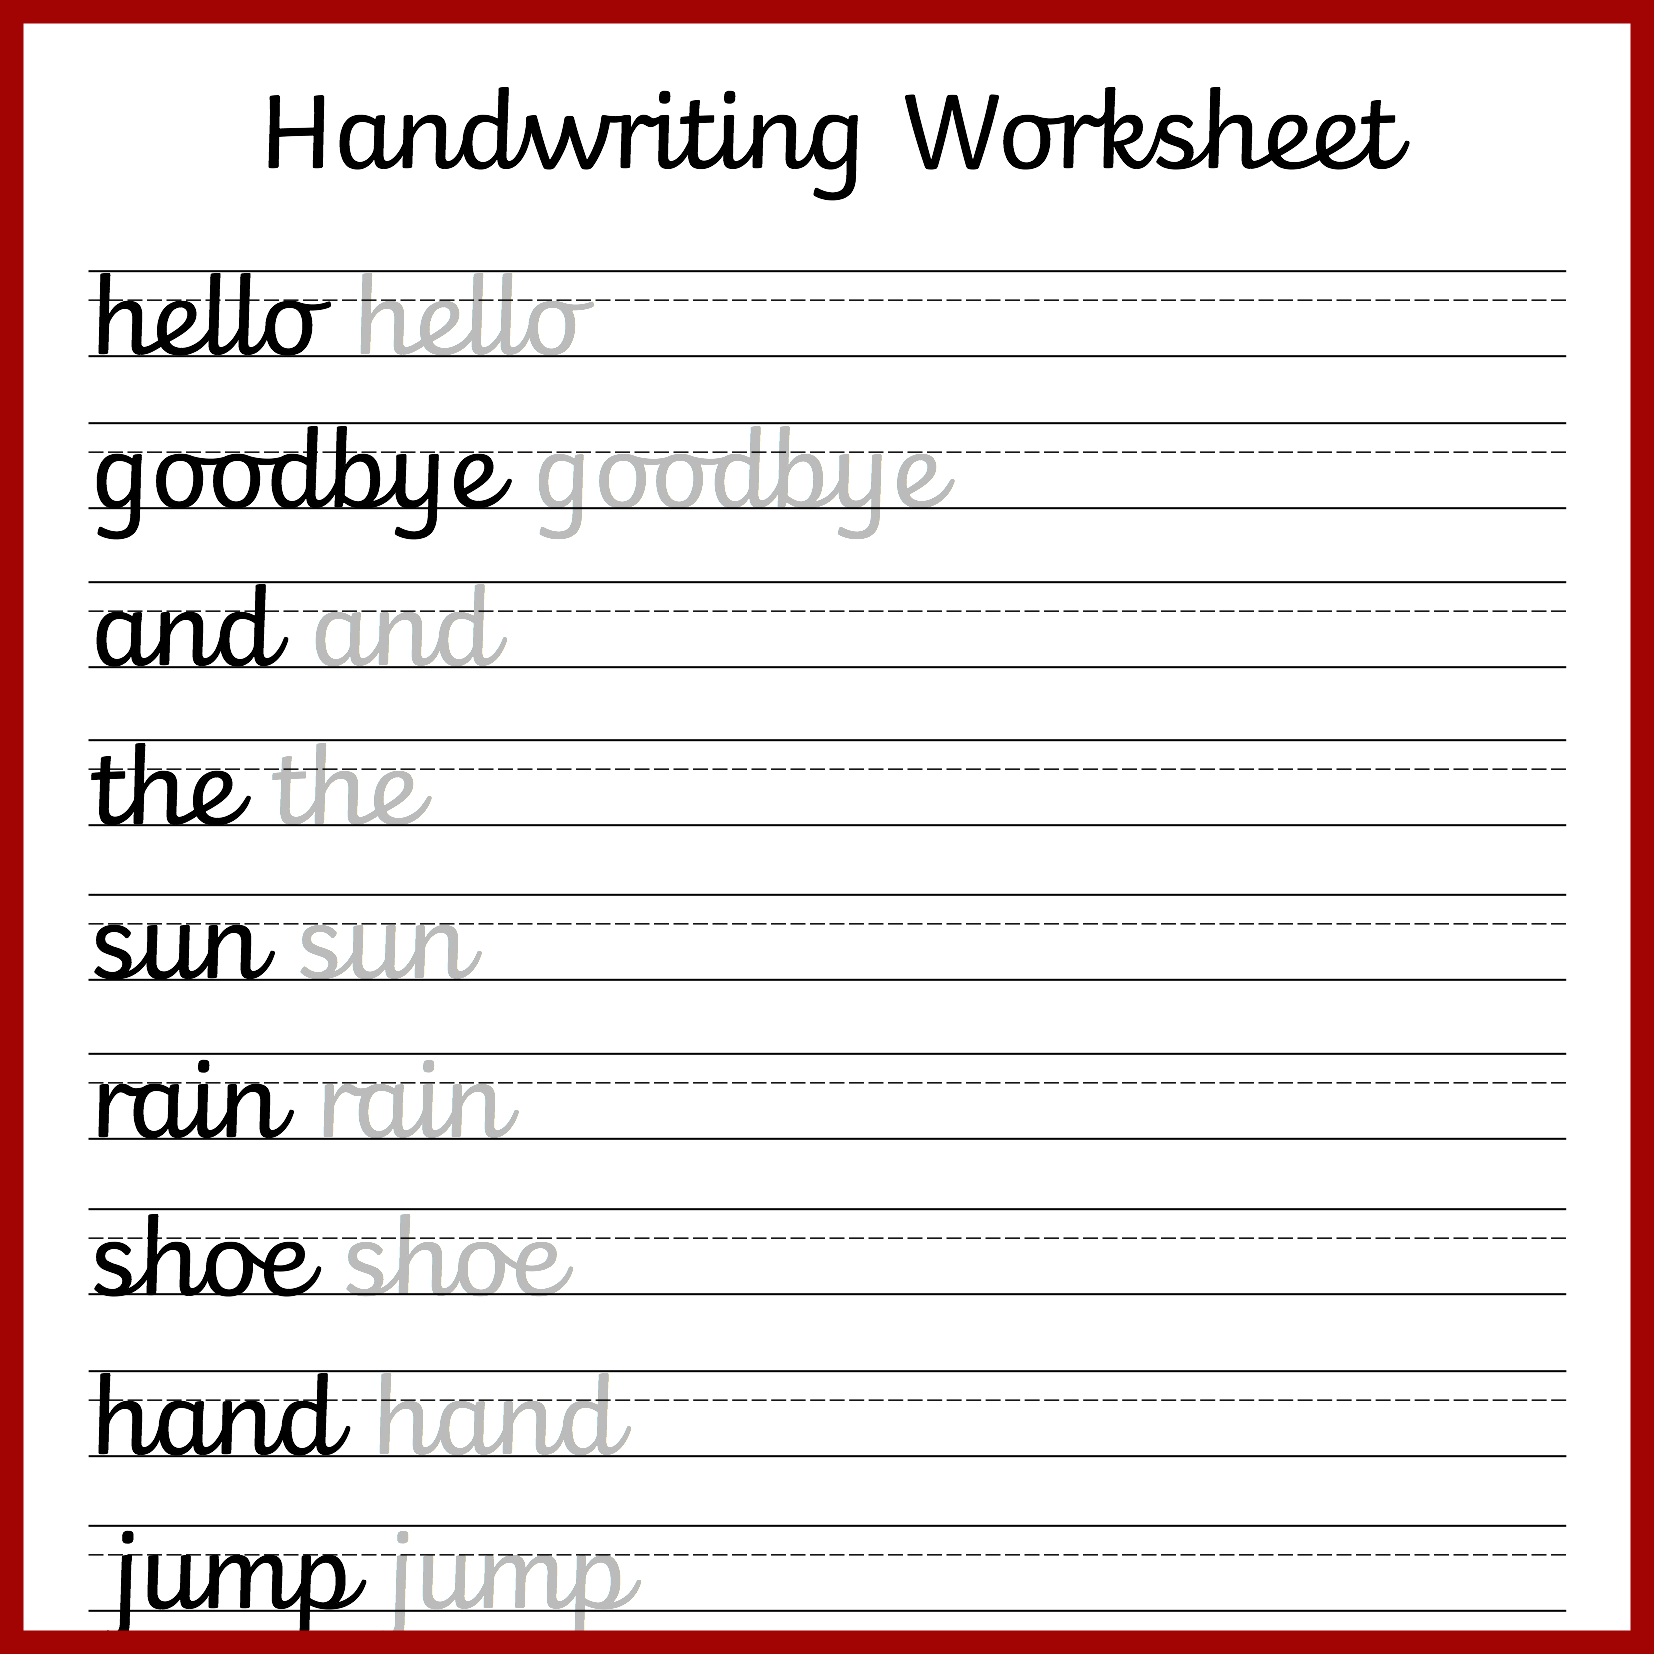 hand writing worksheets Students can practice writing words using printable handwriting practice worksheets customize for font style, size, case, and guiding arrows.